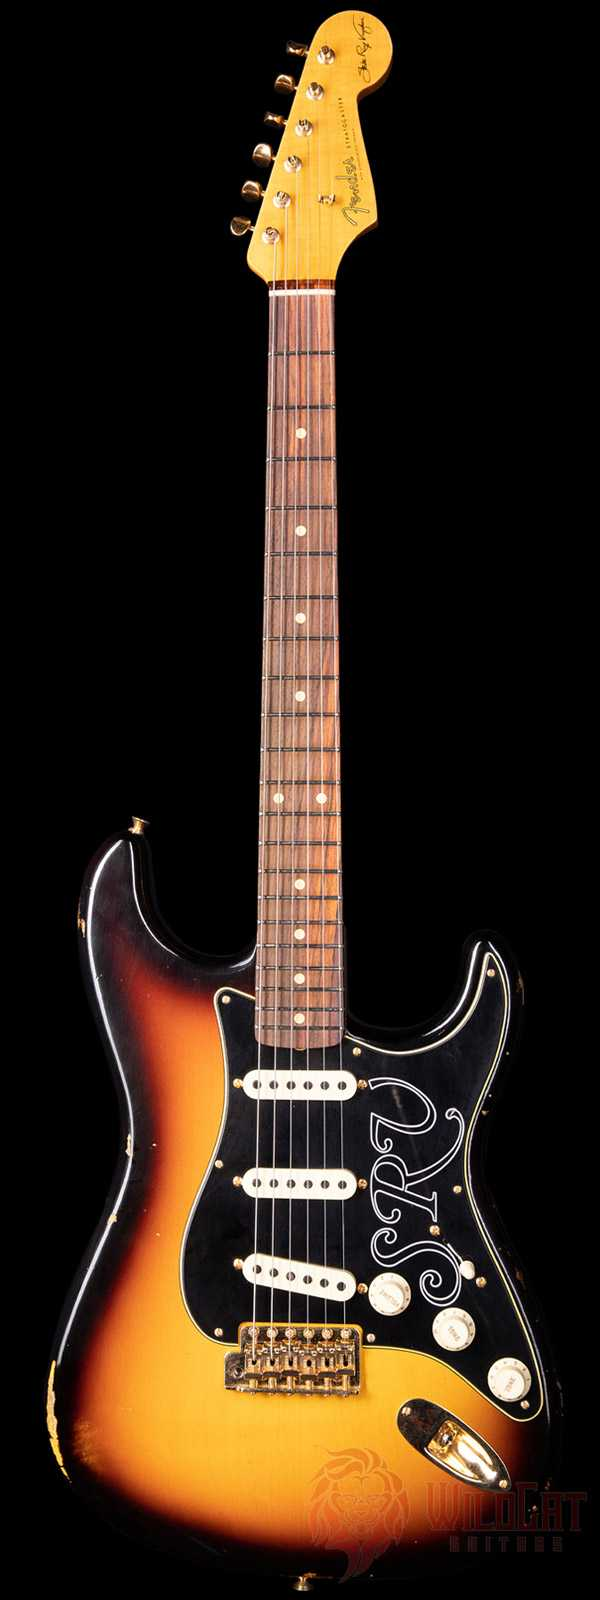 Fender Custom Shop Stevie Ray Vaughan Signature Stratocaster Relic Faded 3-Tone Sunburst